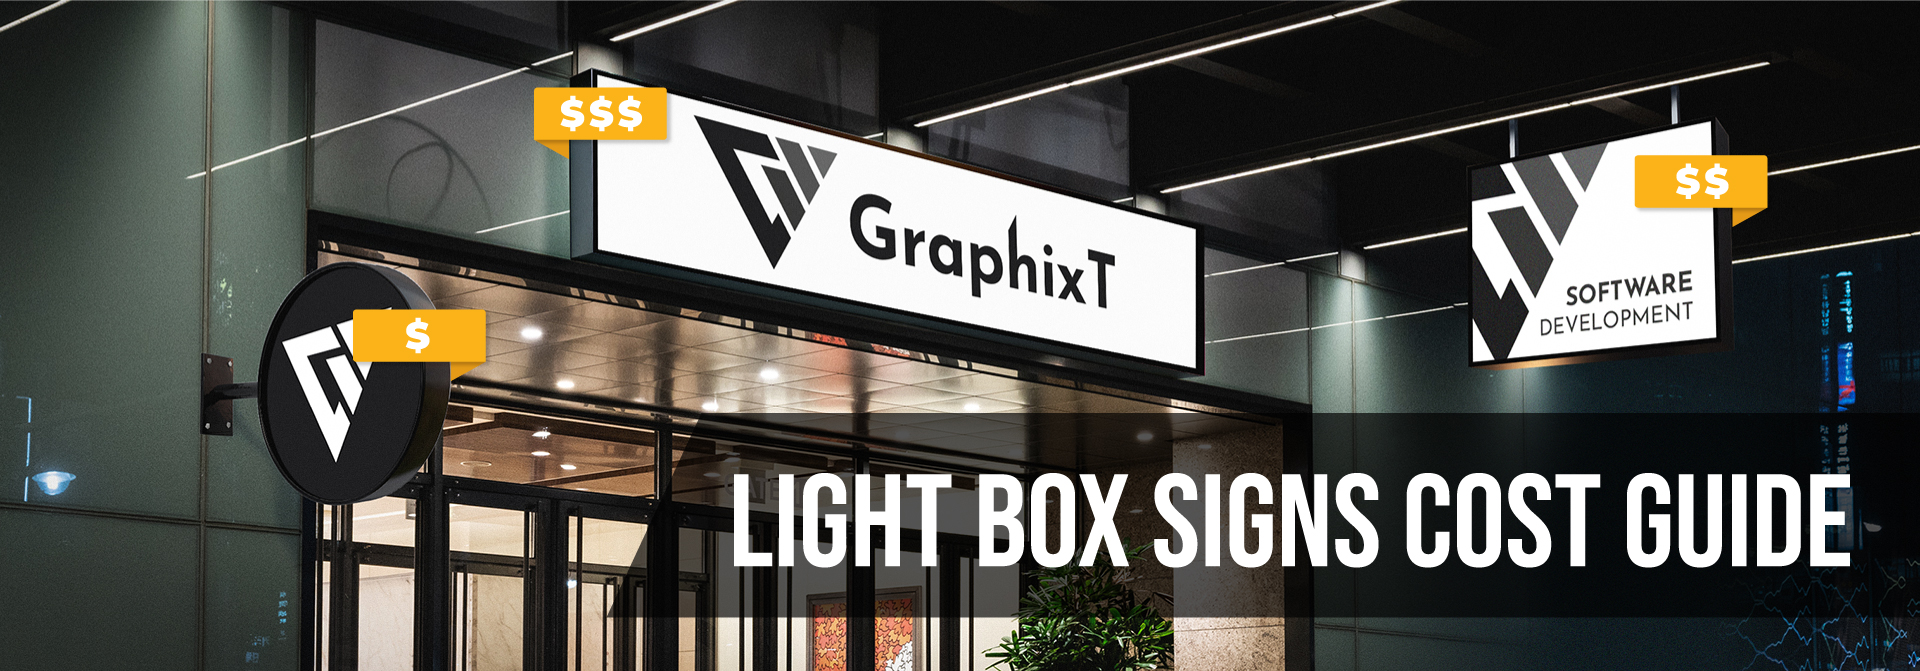 light box sign price guide